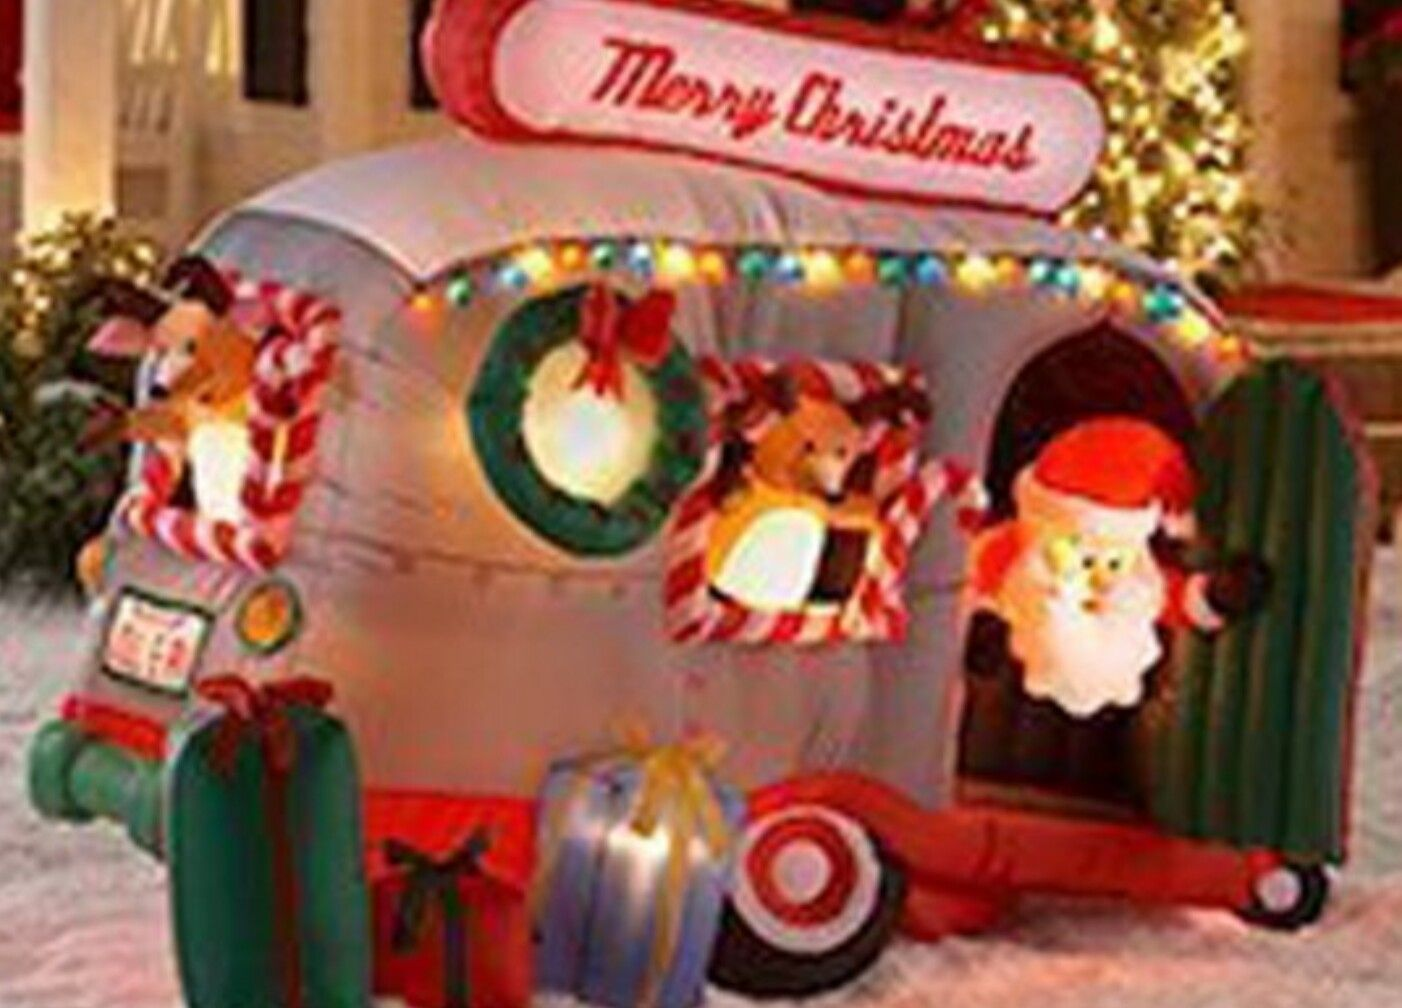 discover ideas about christmas lawn decorations the inflatable - Inflatable Christmas Lawn Decorations